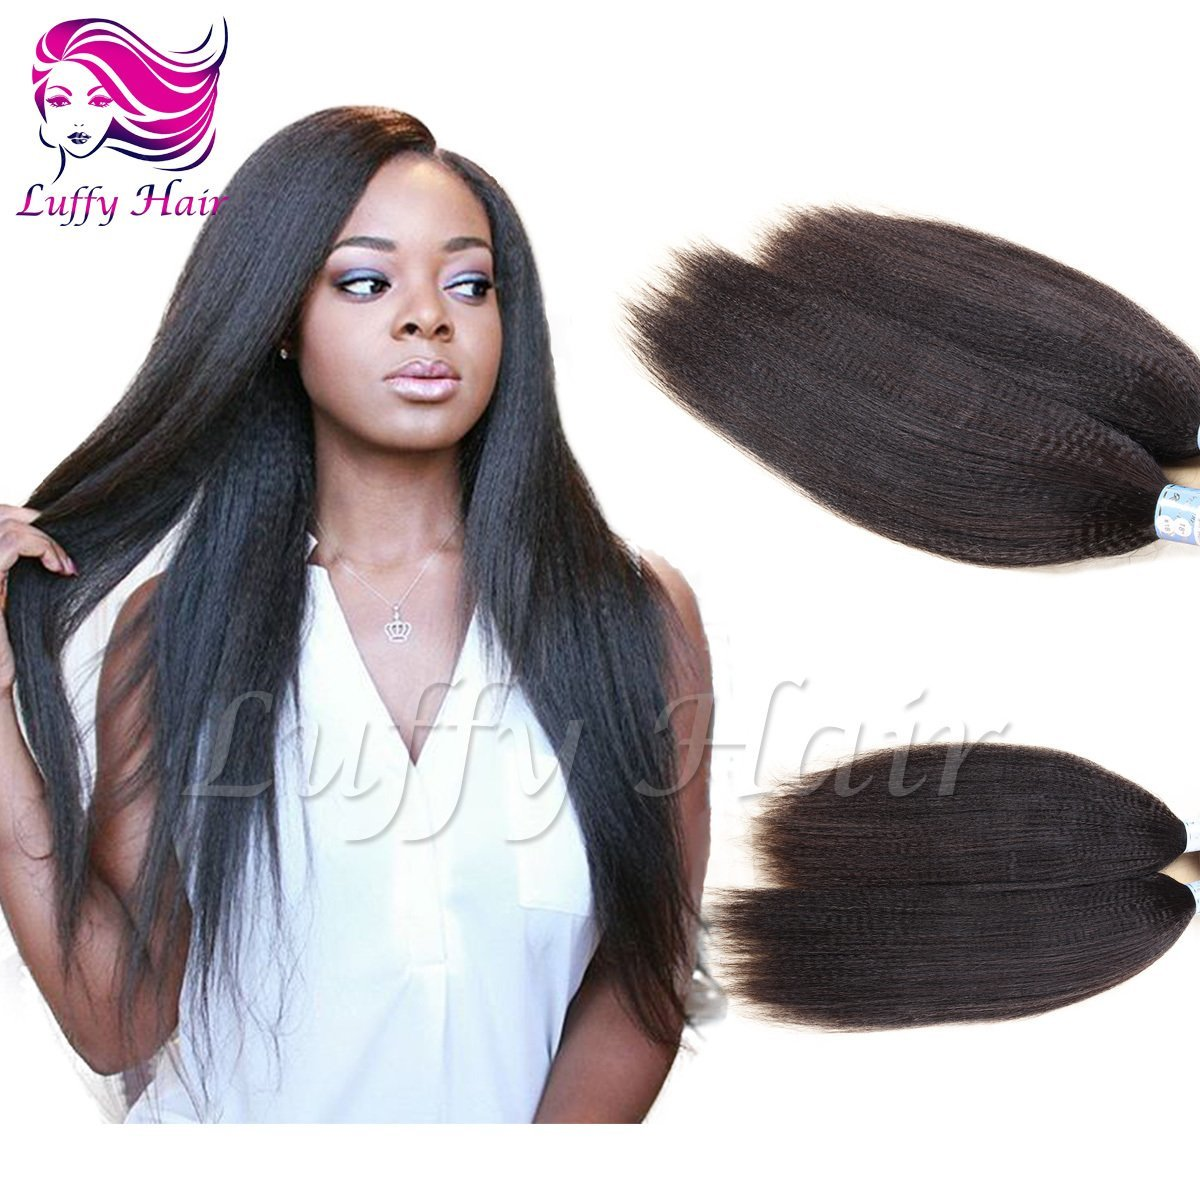 8A Virgin Human Hair Italian Yaki Straight Fusion Hair Extensions - KFL010